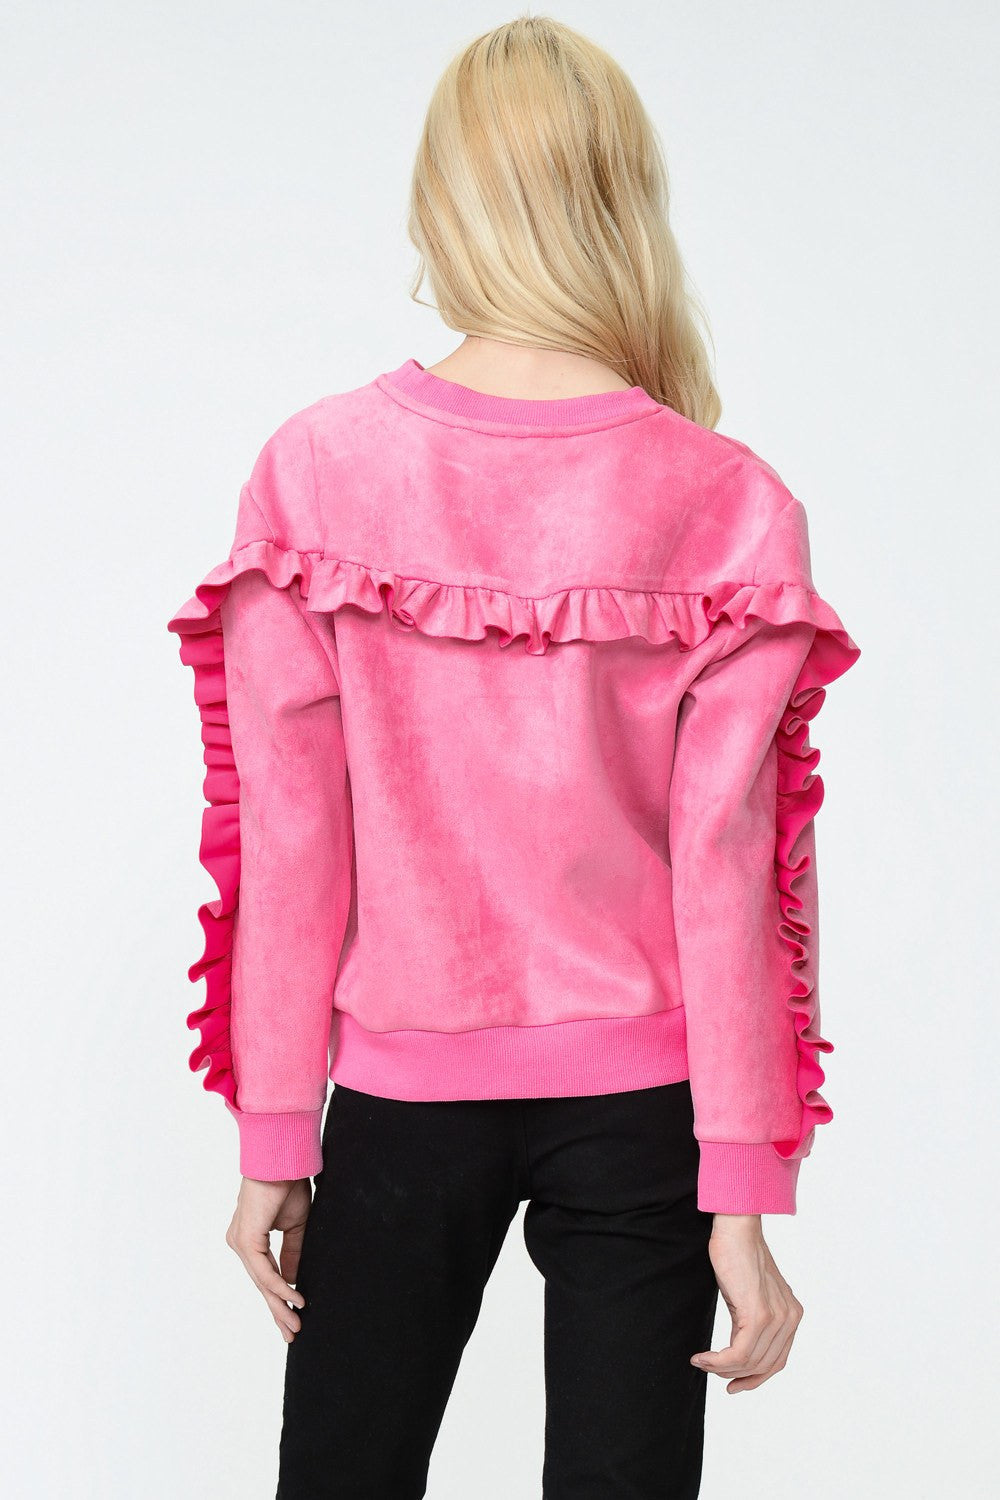 Belle de Jour Volante Sweater by Sister Jane